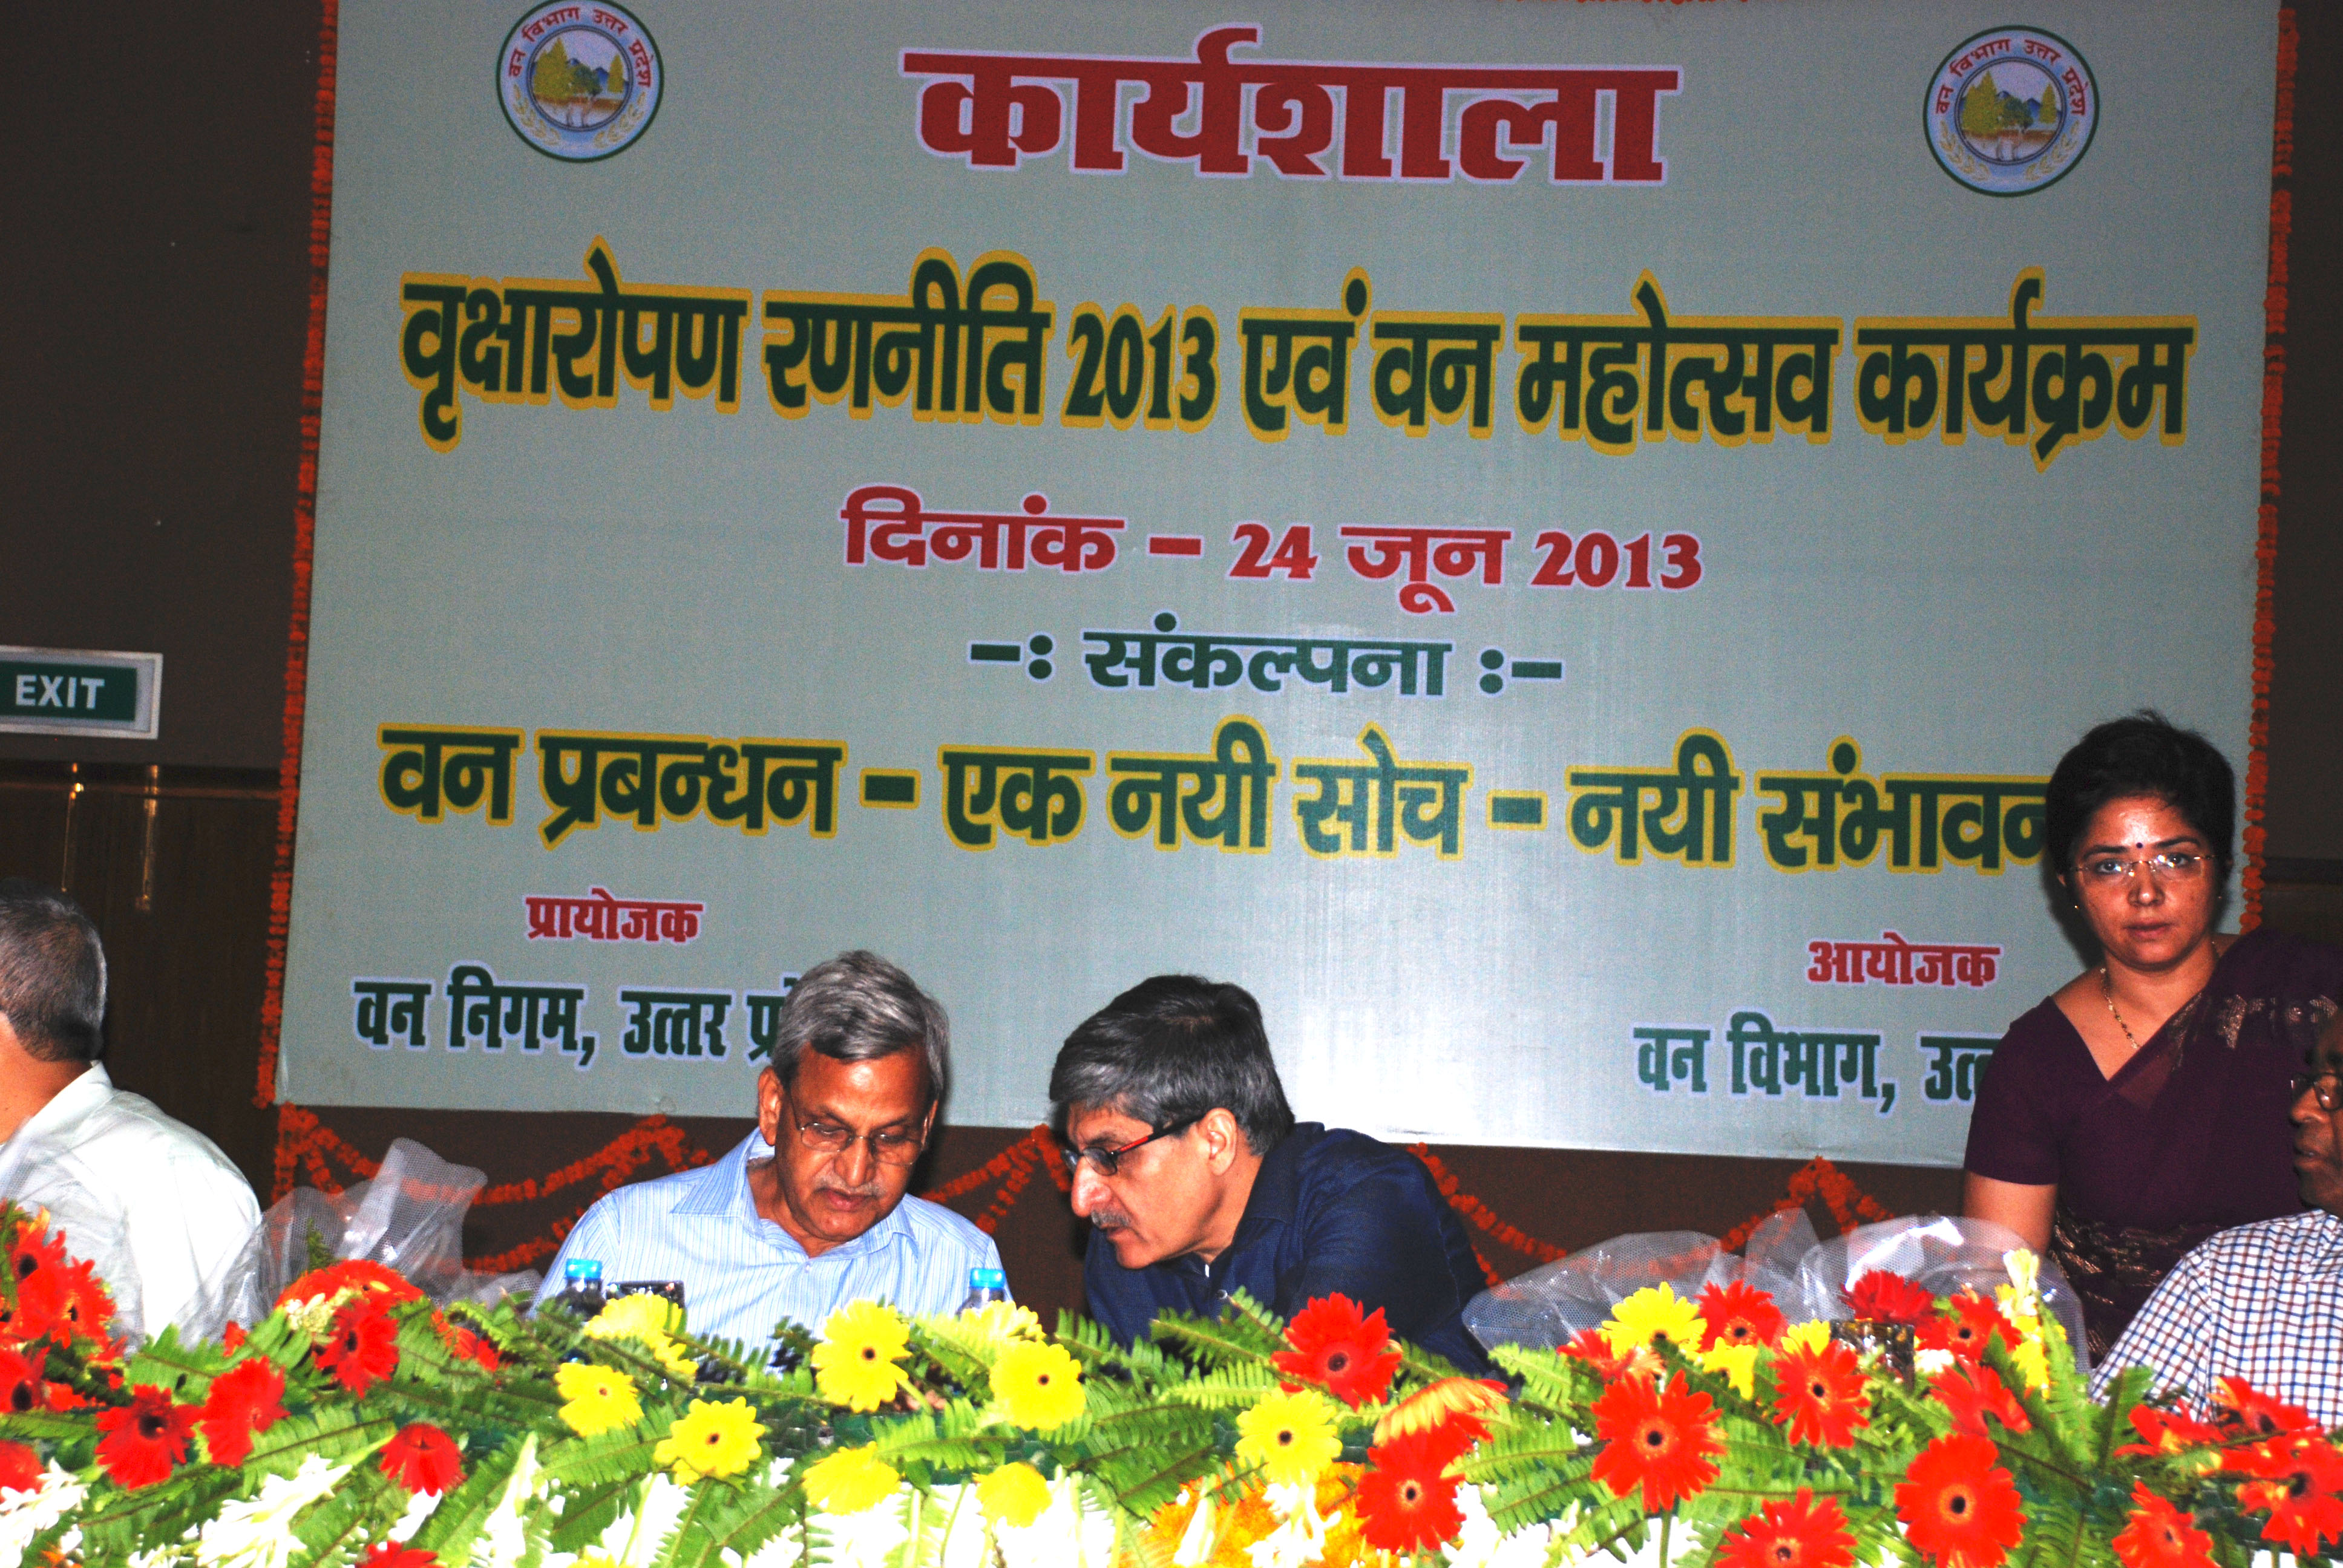 Van Mahotsav on 24 June, 2013